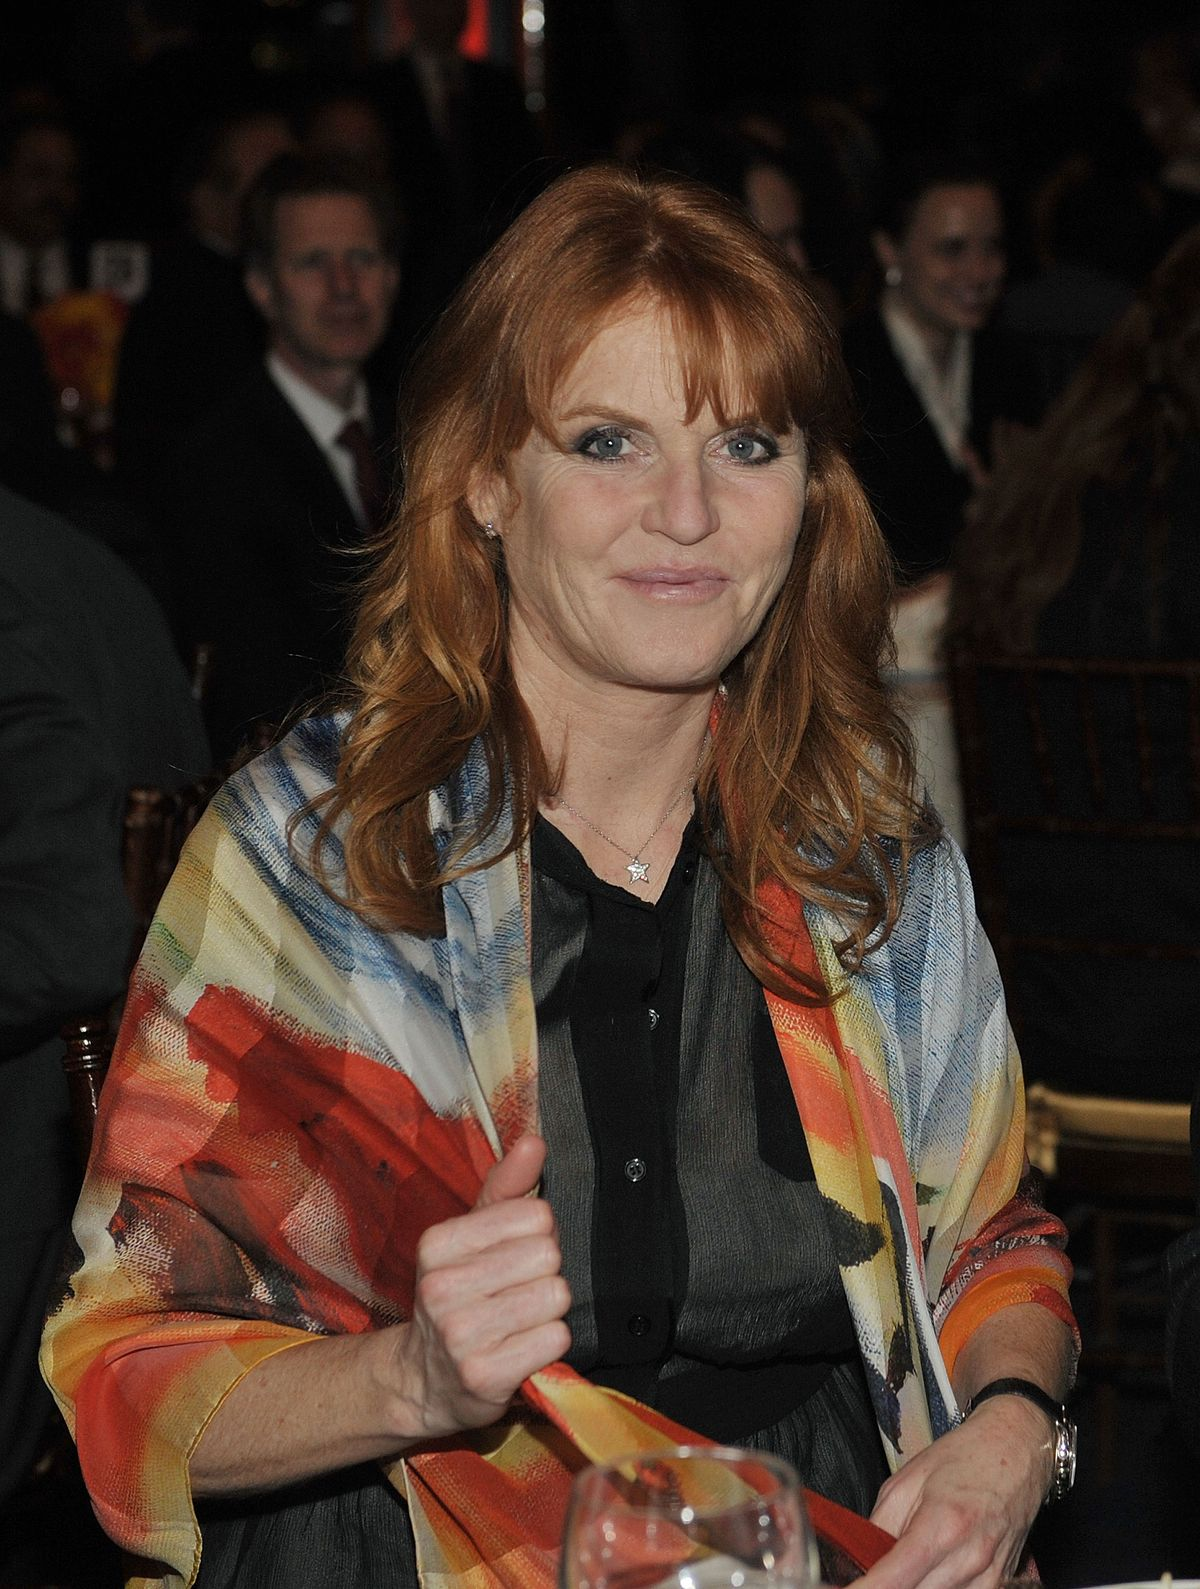 Sarah Ferguson, Duchess of York at the Miracle Corners of the World Annual Gala dinner celebration on April 13, 2010 | Photo: Getty Images